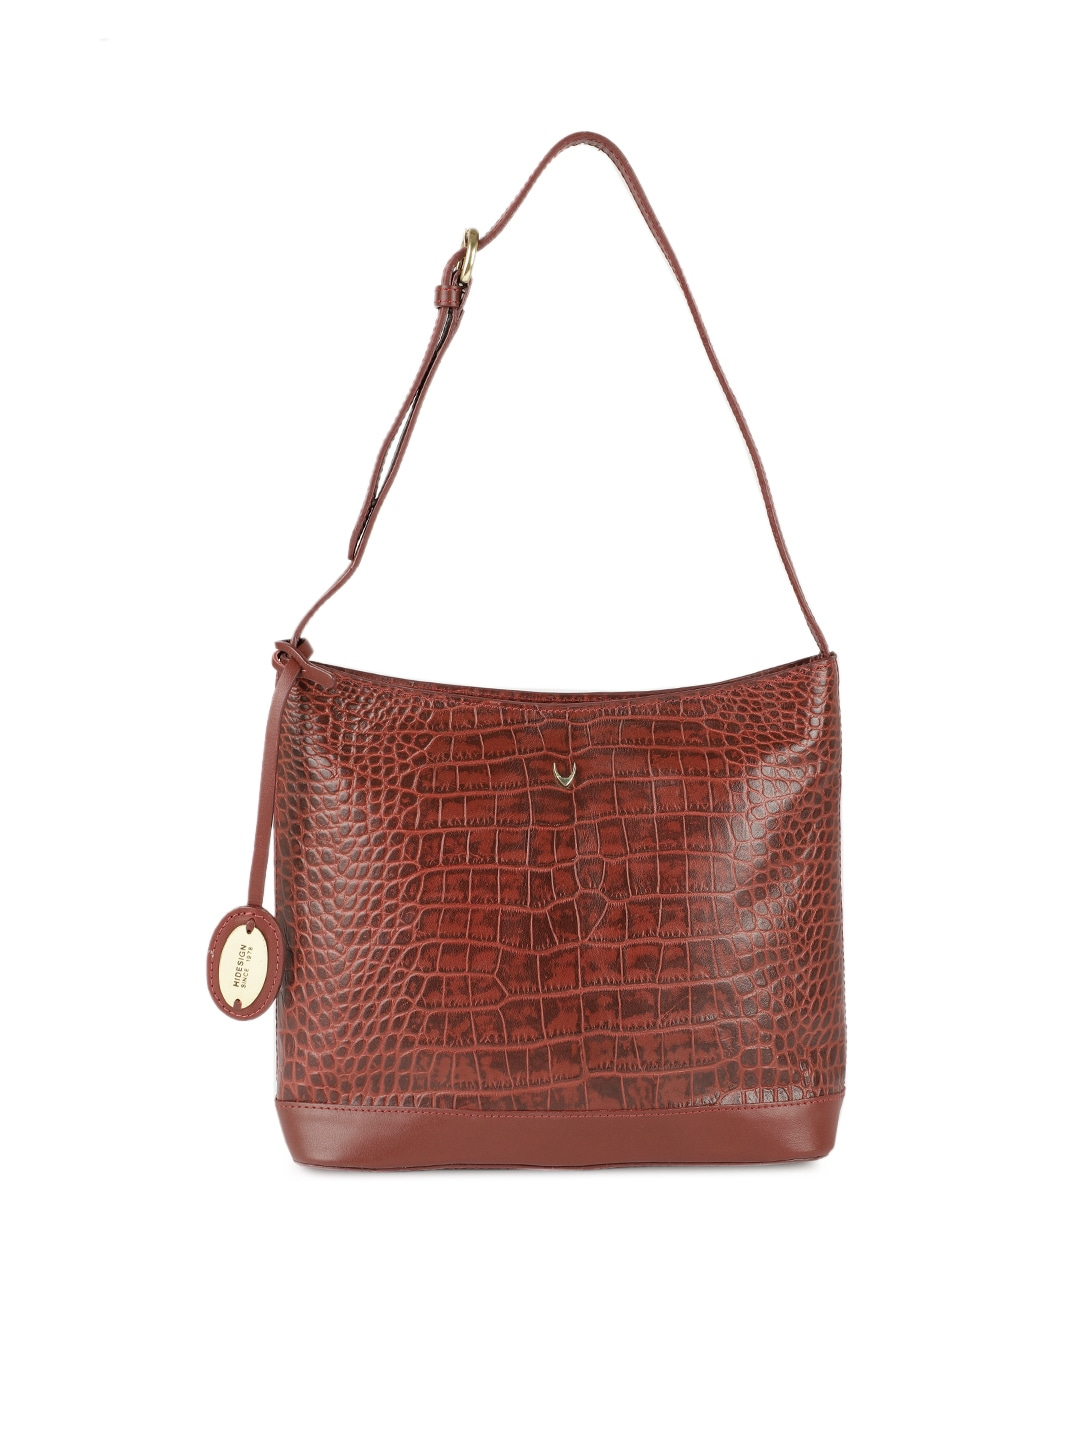 df5f3f2d2 Handbags For Women - Exclusive Women Handbags Online at Myntra